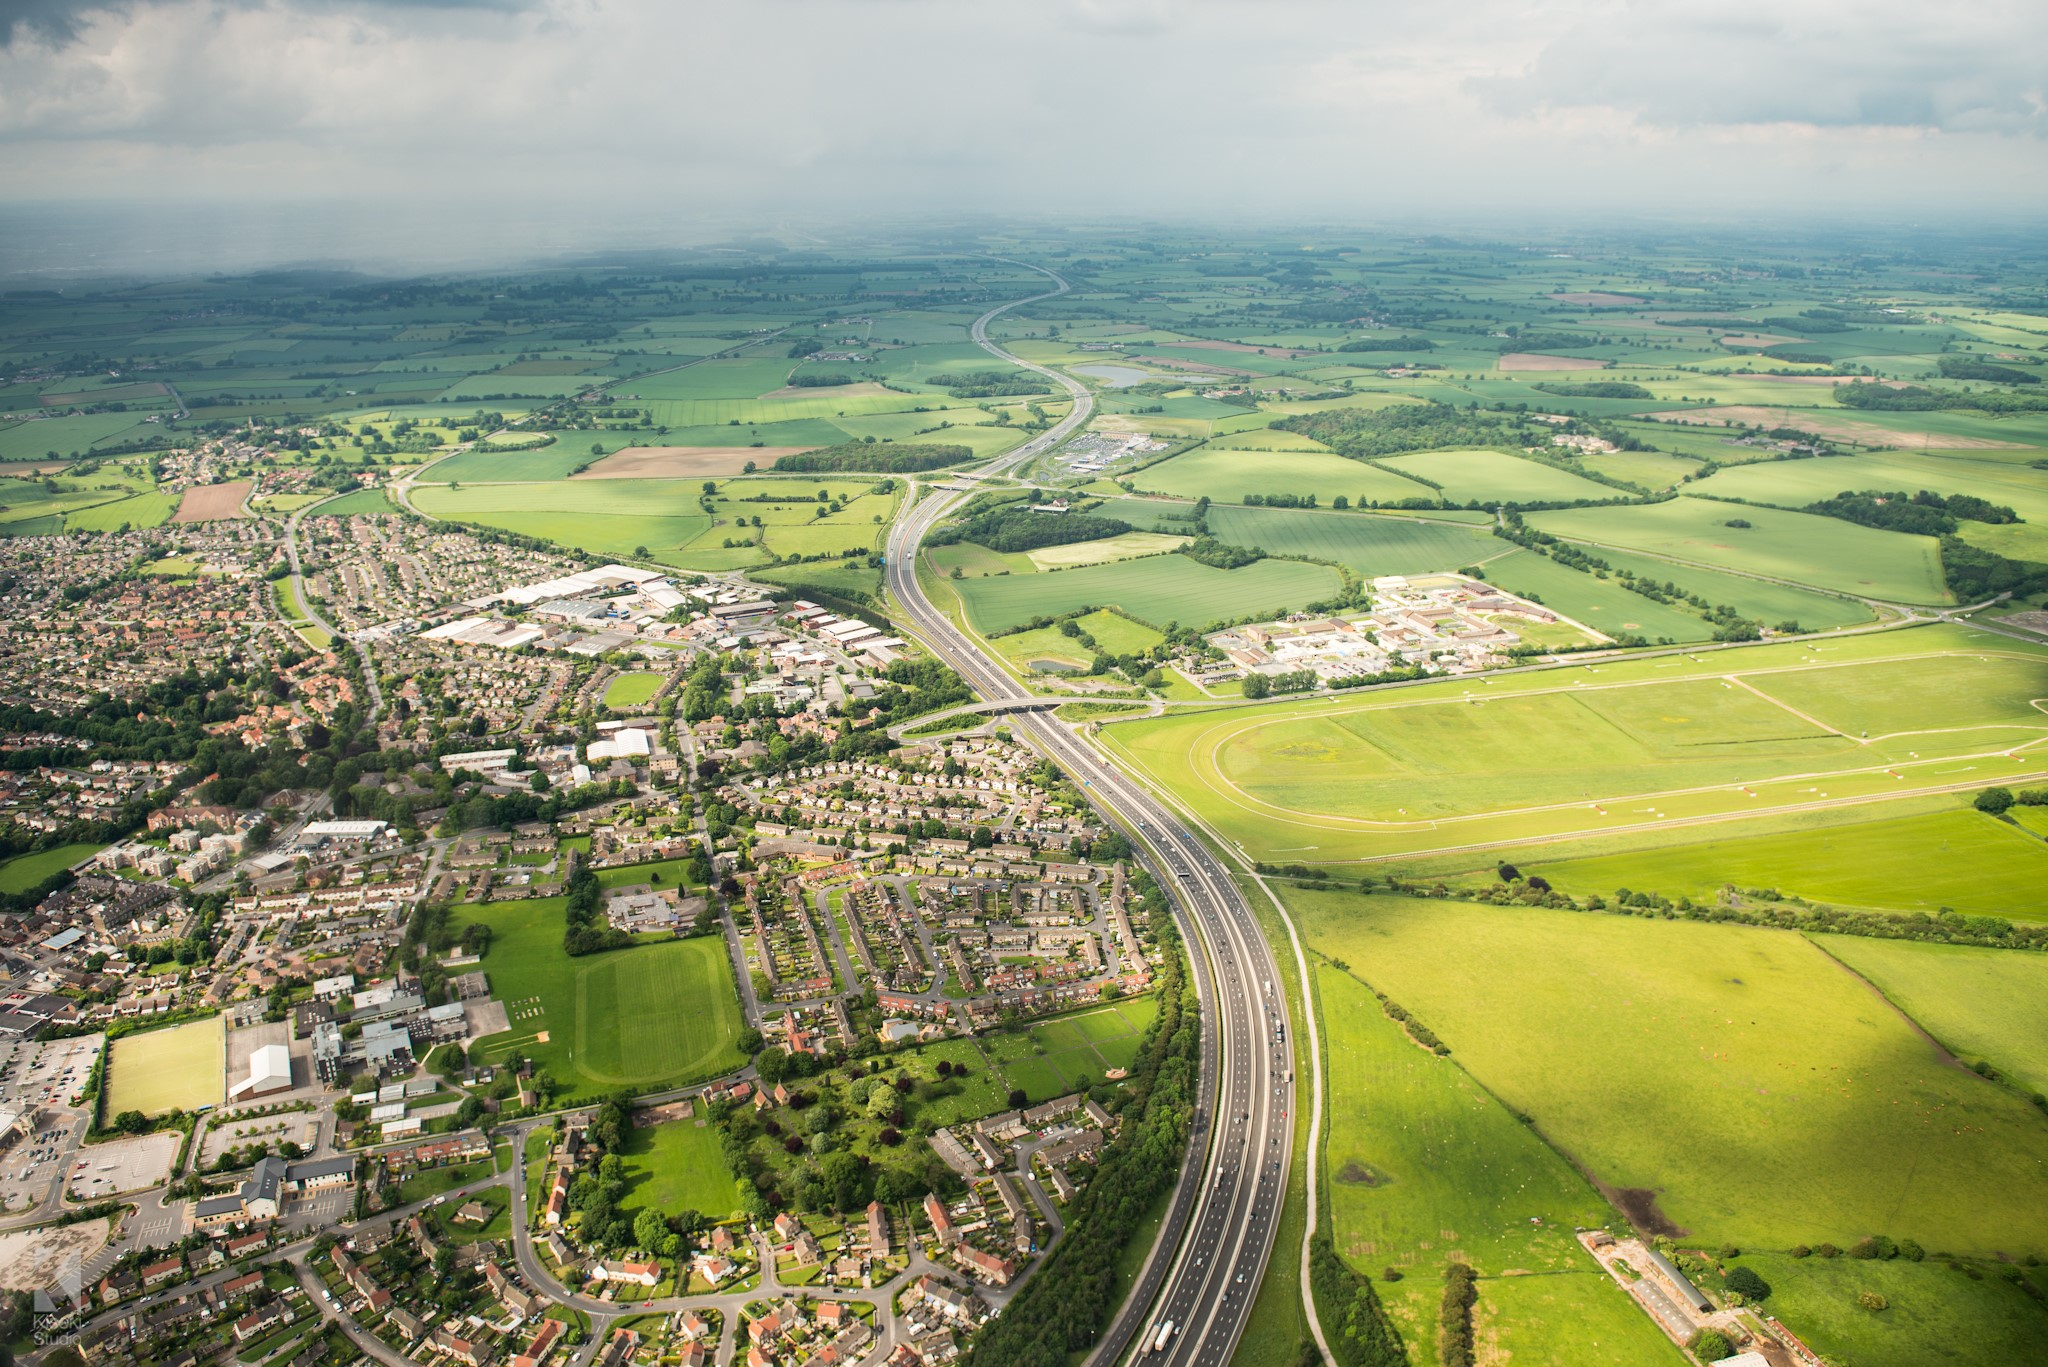 A1 Wetherby Racecourse aeriel photo